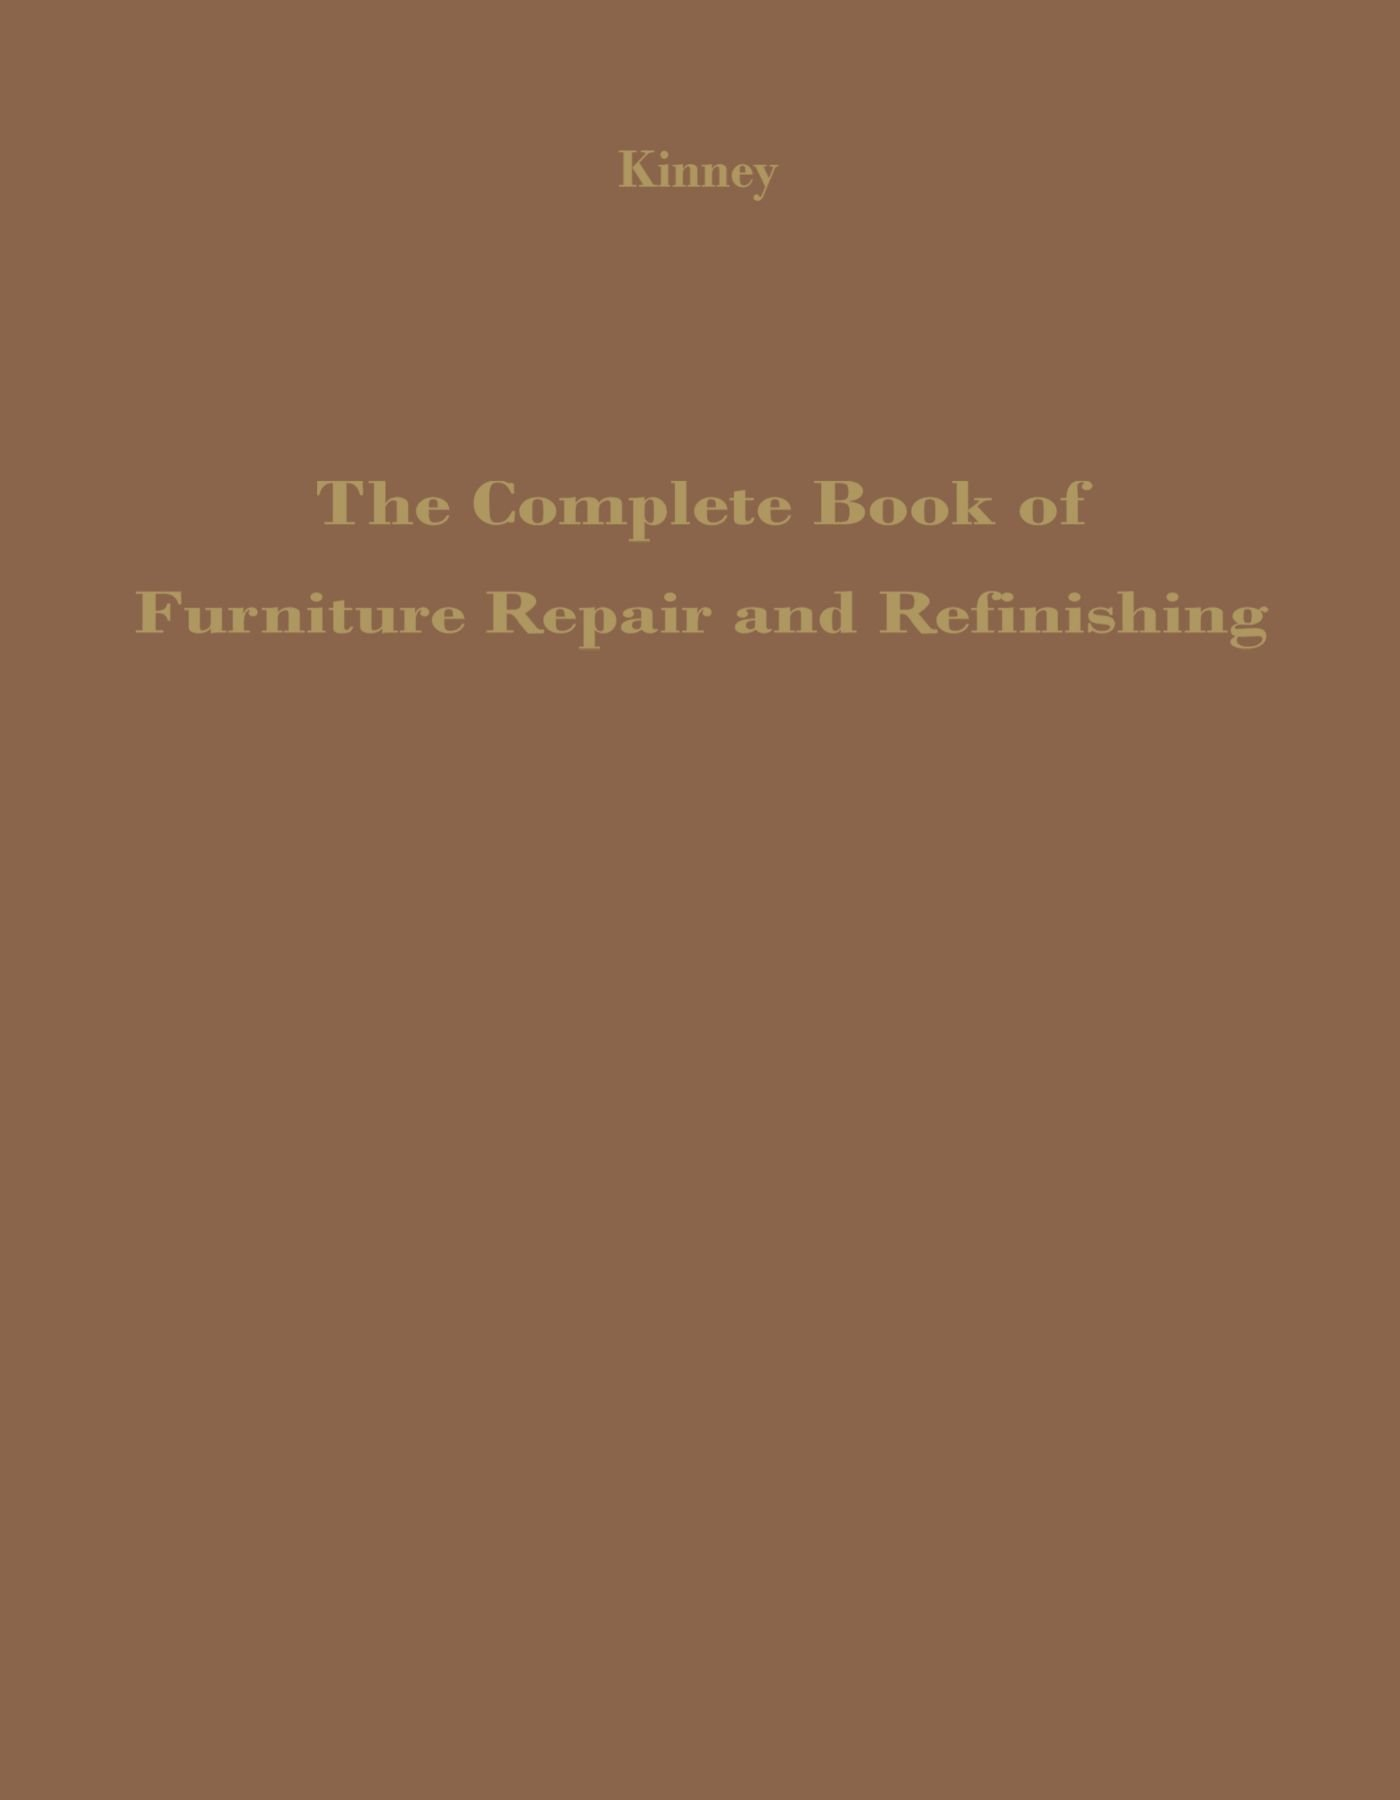 The Complete Book of Furniture Repair and Refinishing: Ralph Parsons  Kinney: 9780720603729: Amazon.com: Books